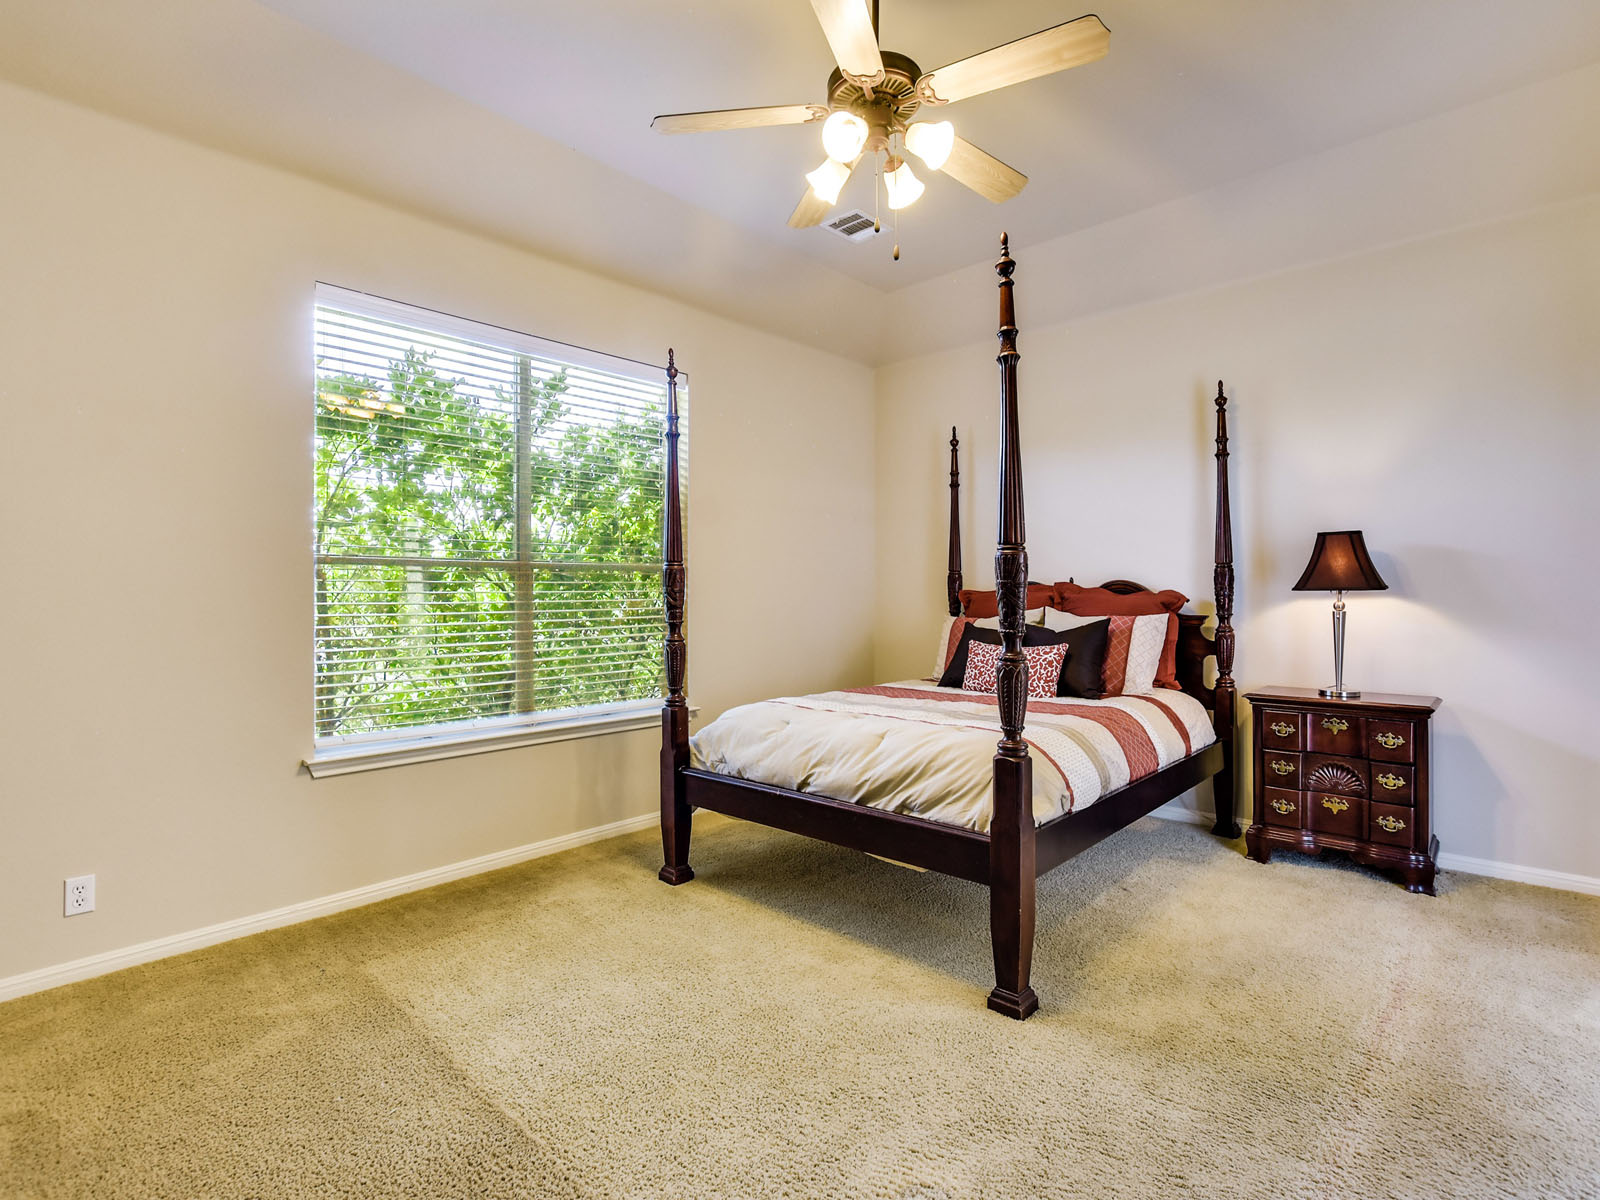 Additional photo for property listing at Fabulous Home Overlooking Greenbelt 400 Harris Dr Austin, Texas 78737 Estados Unidos